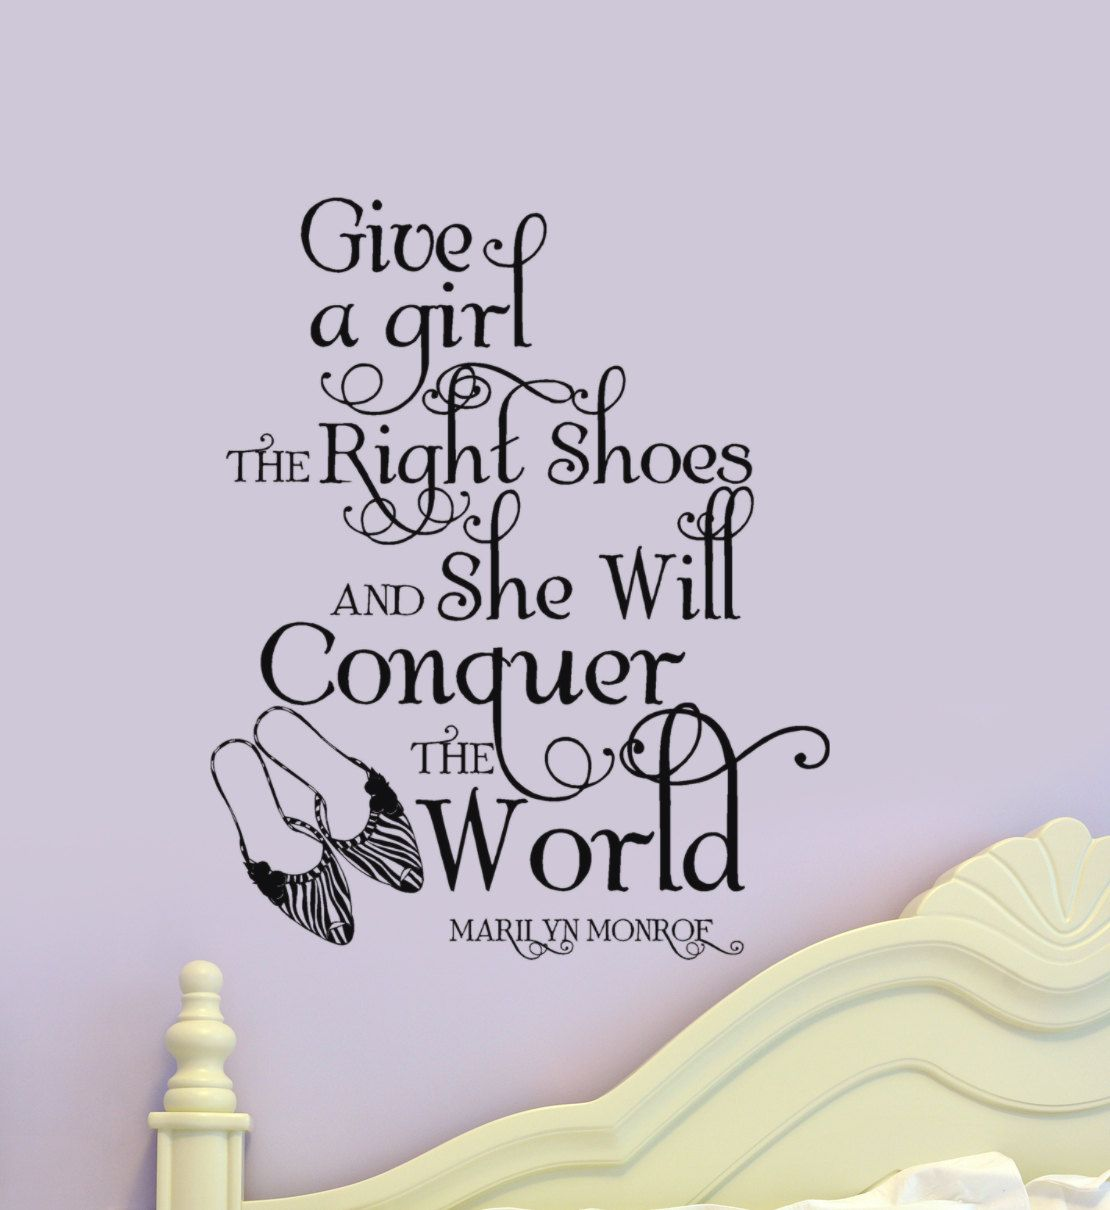 Marilyn monroe wall decal give a girl the right shoes and she will